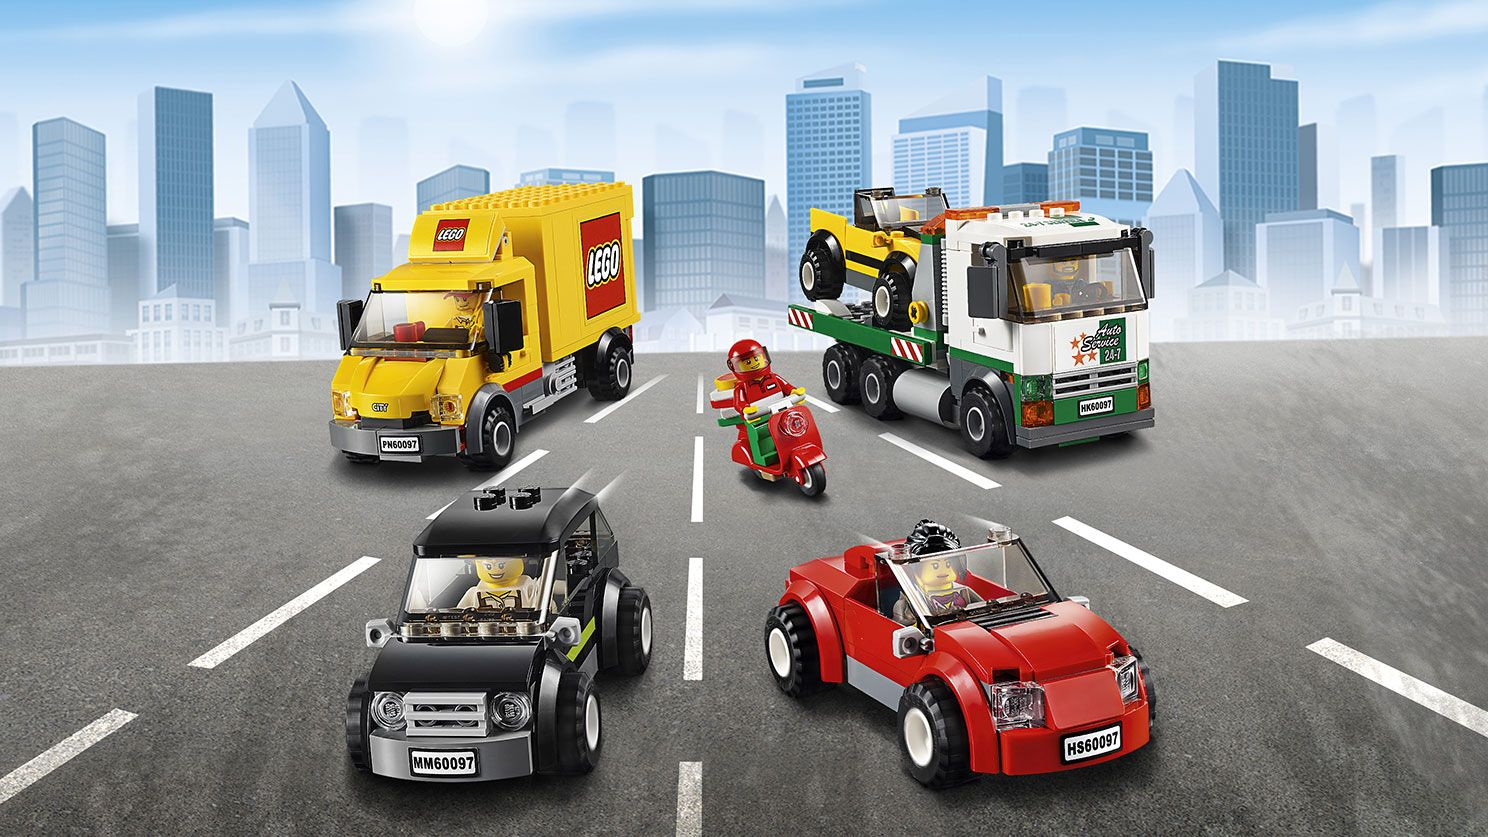 LEGO City Town cars and trucks - City Square 60097 (mit ...